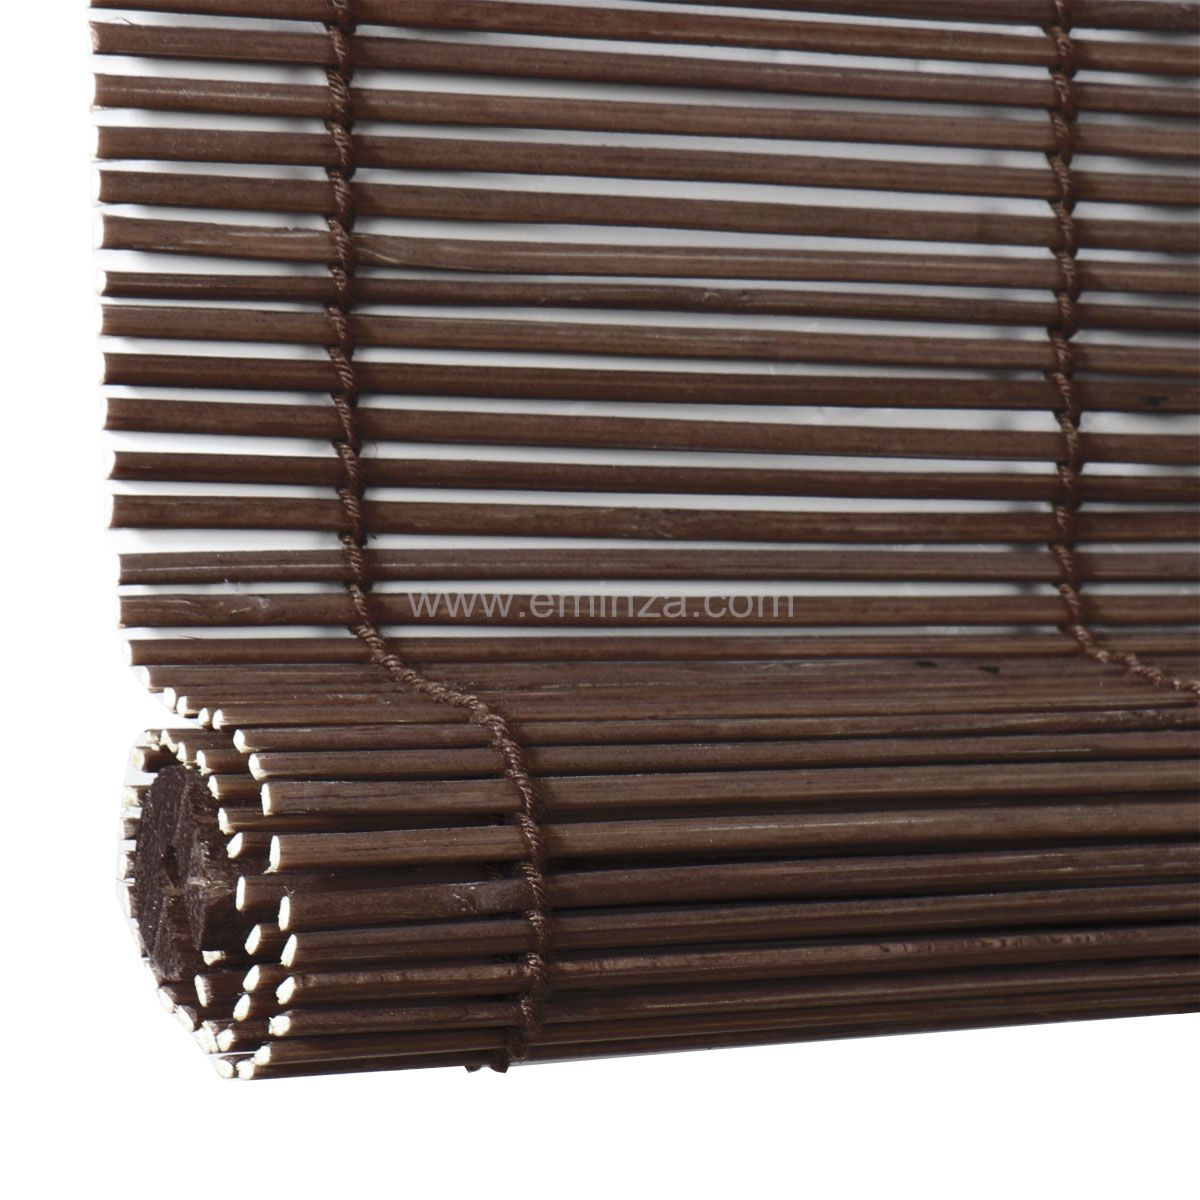 store enrouleur baguettes 40 x h130 cm bambou chocolat. Black Bedroom Furniture Sets. Home Design Ideas